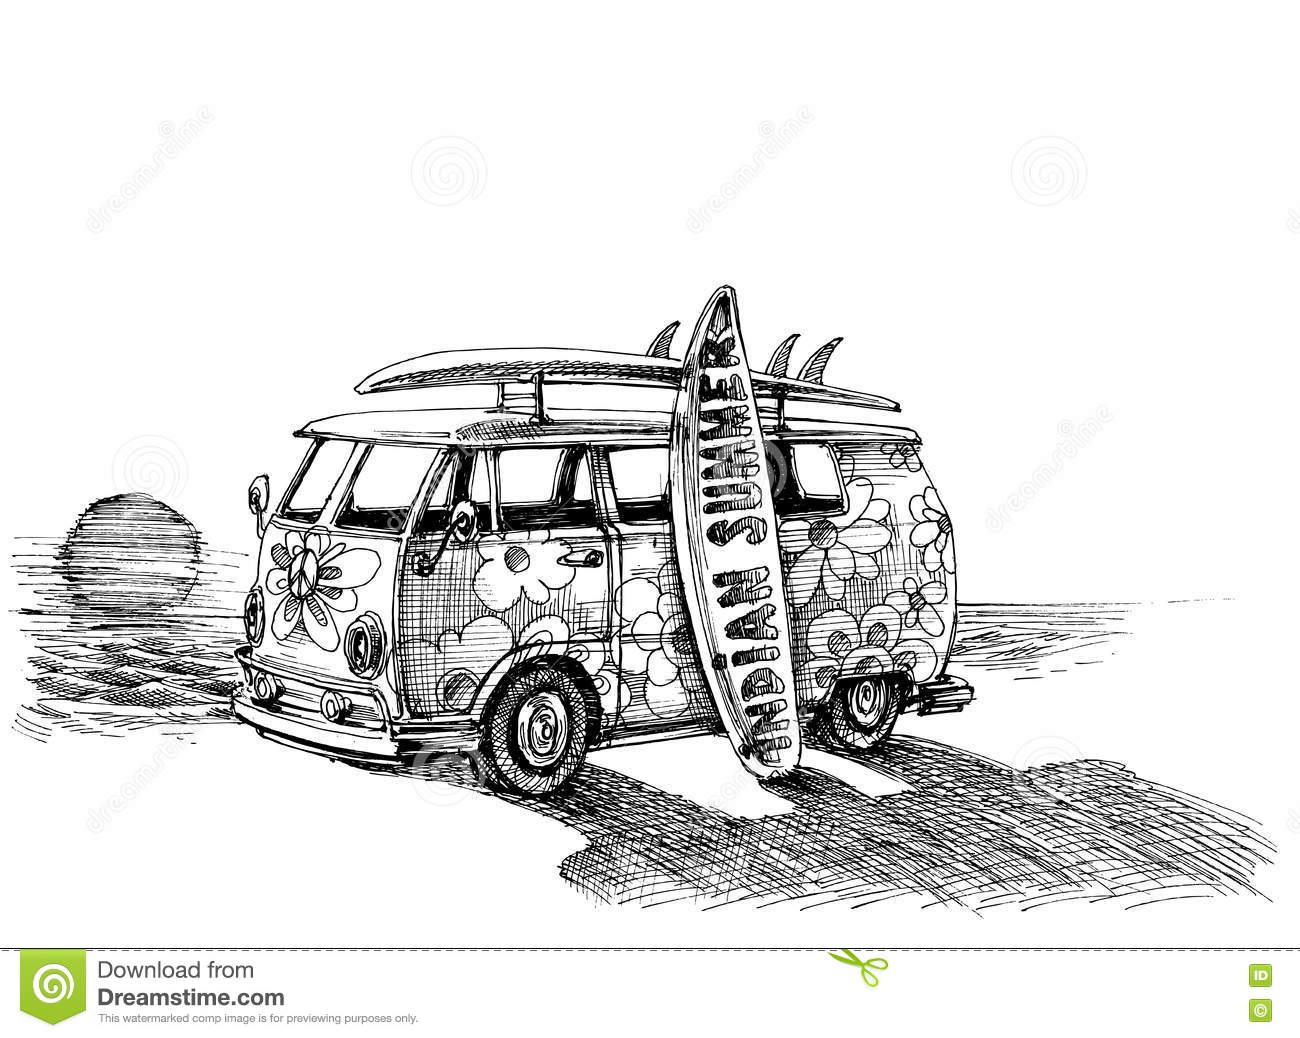 Drawing Lines Surf Movie : Surf van on the beach stock vector illustration of summer